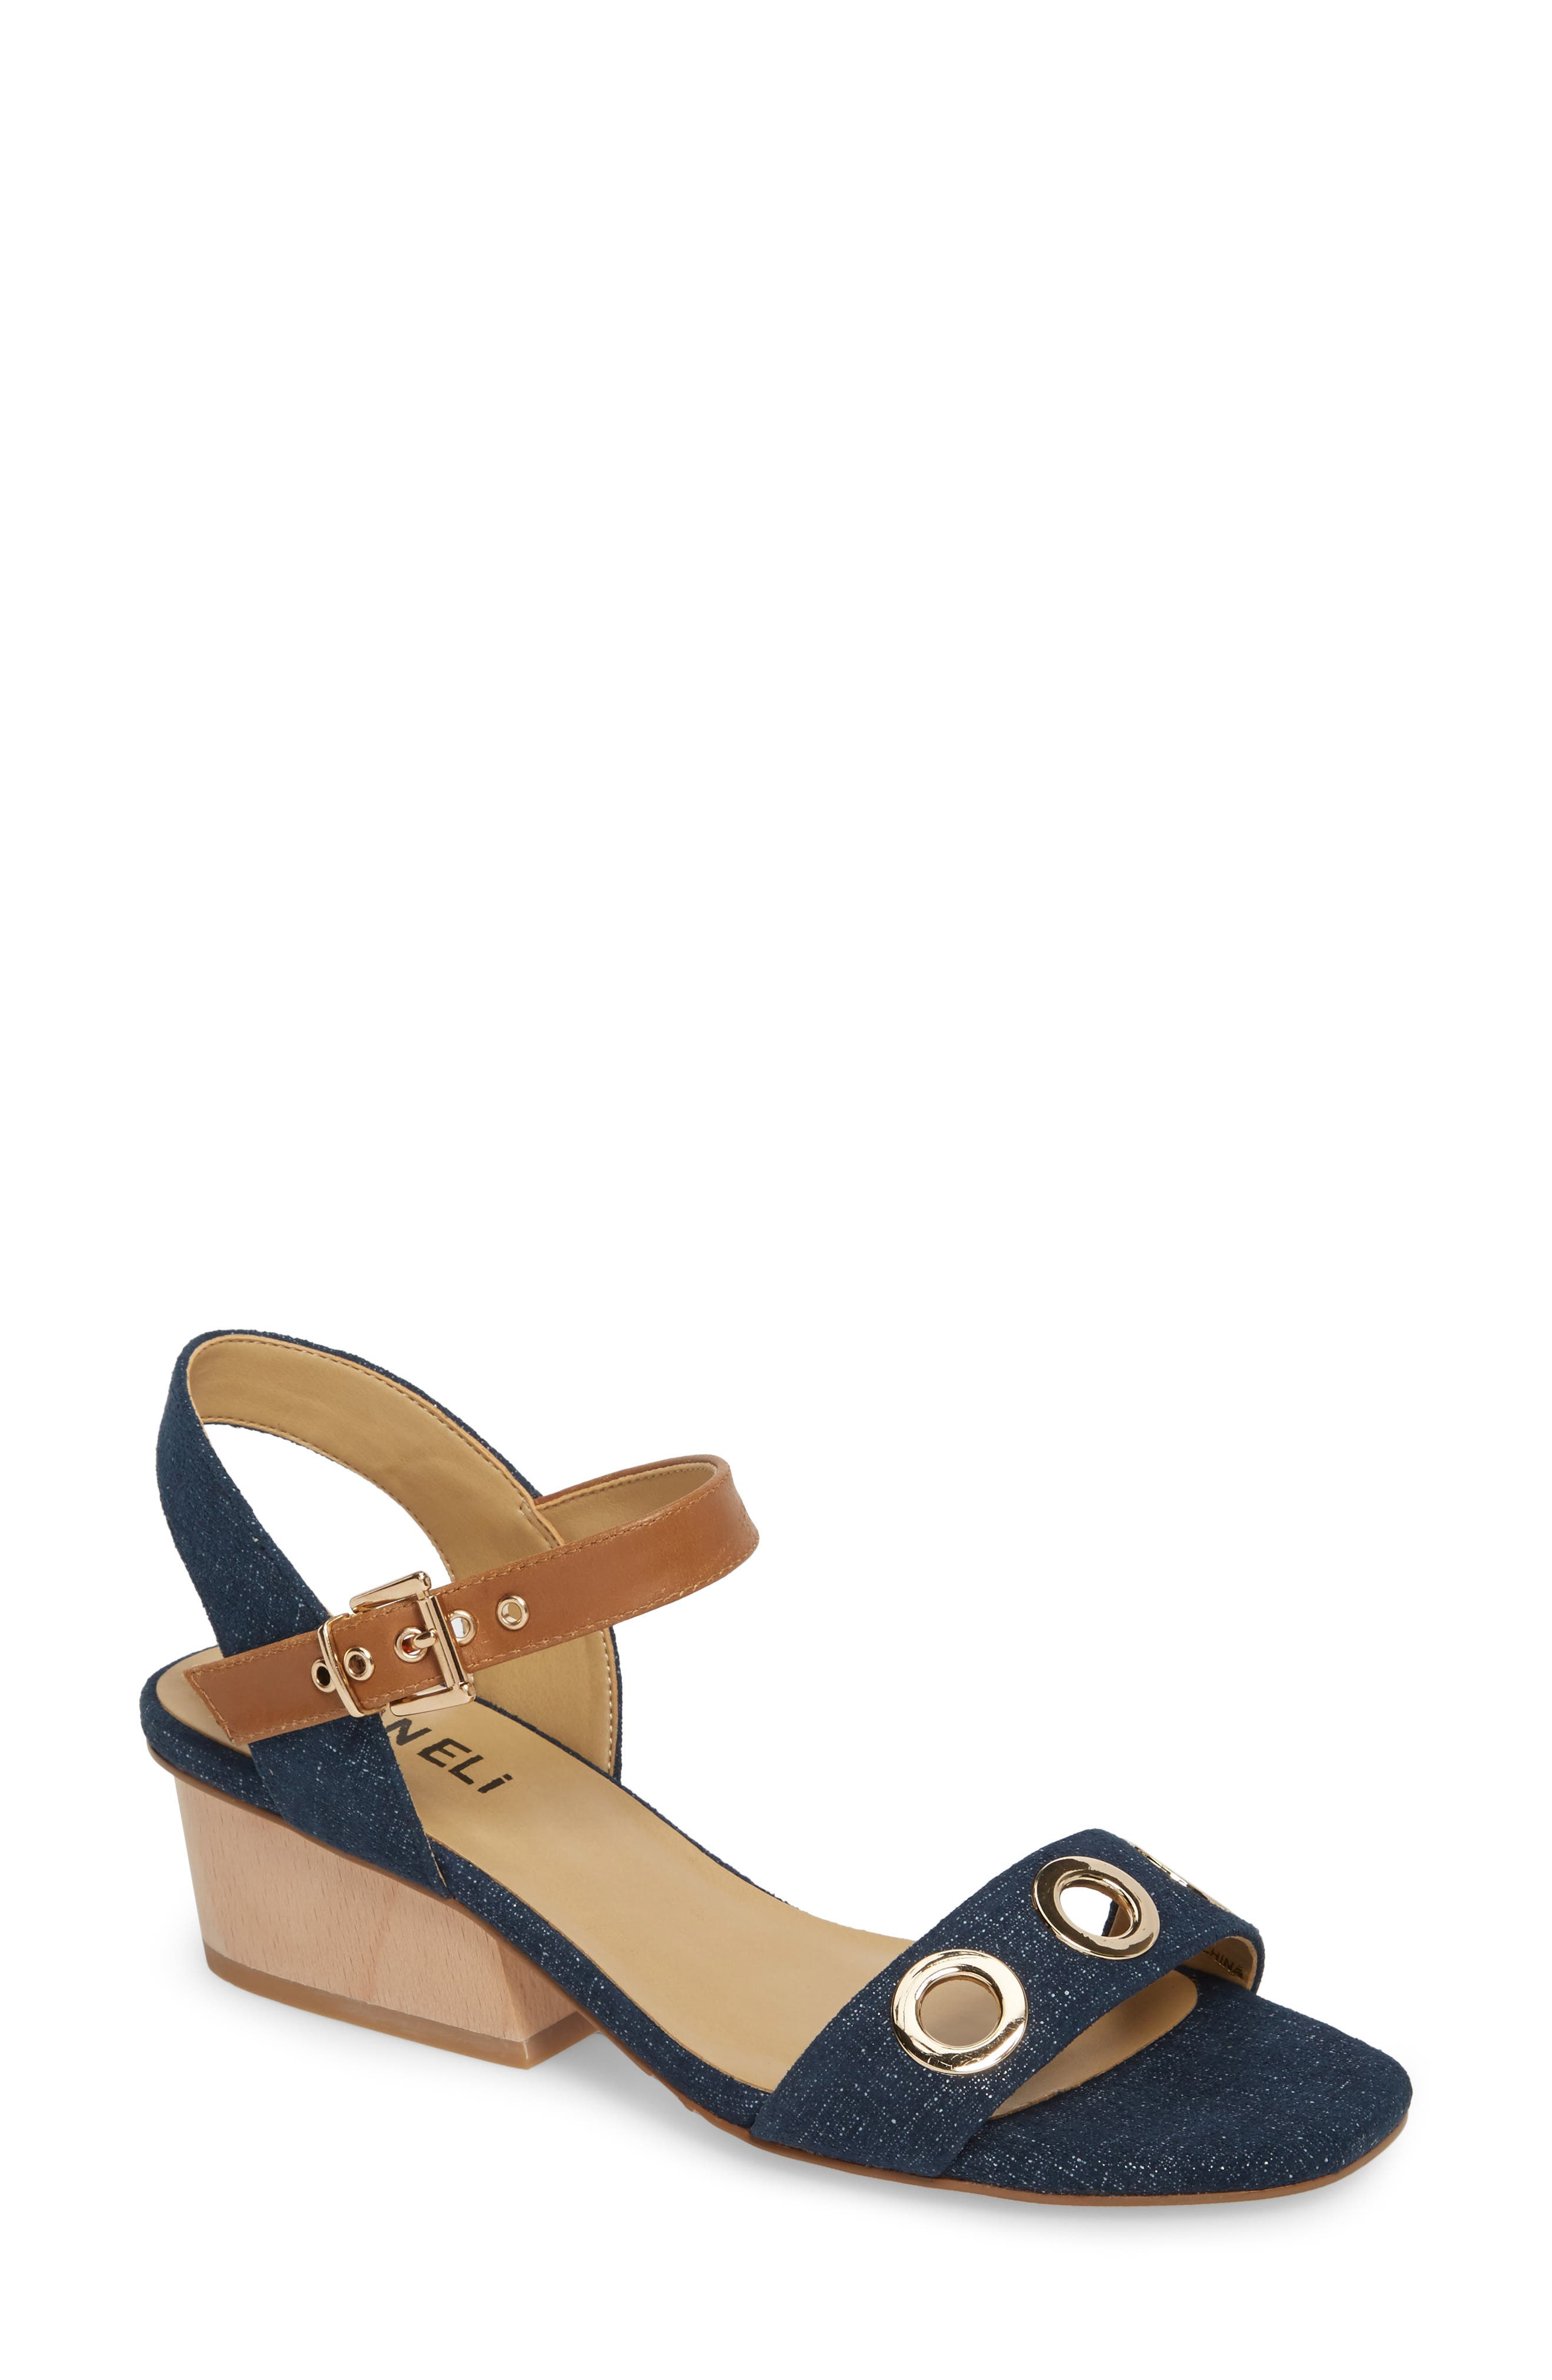 Chaddy Sandal,                         Main,                         color, Jeans Printed Suede